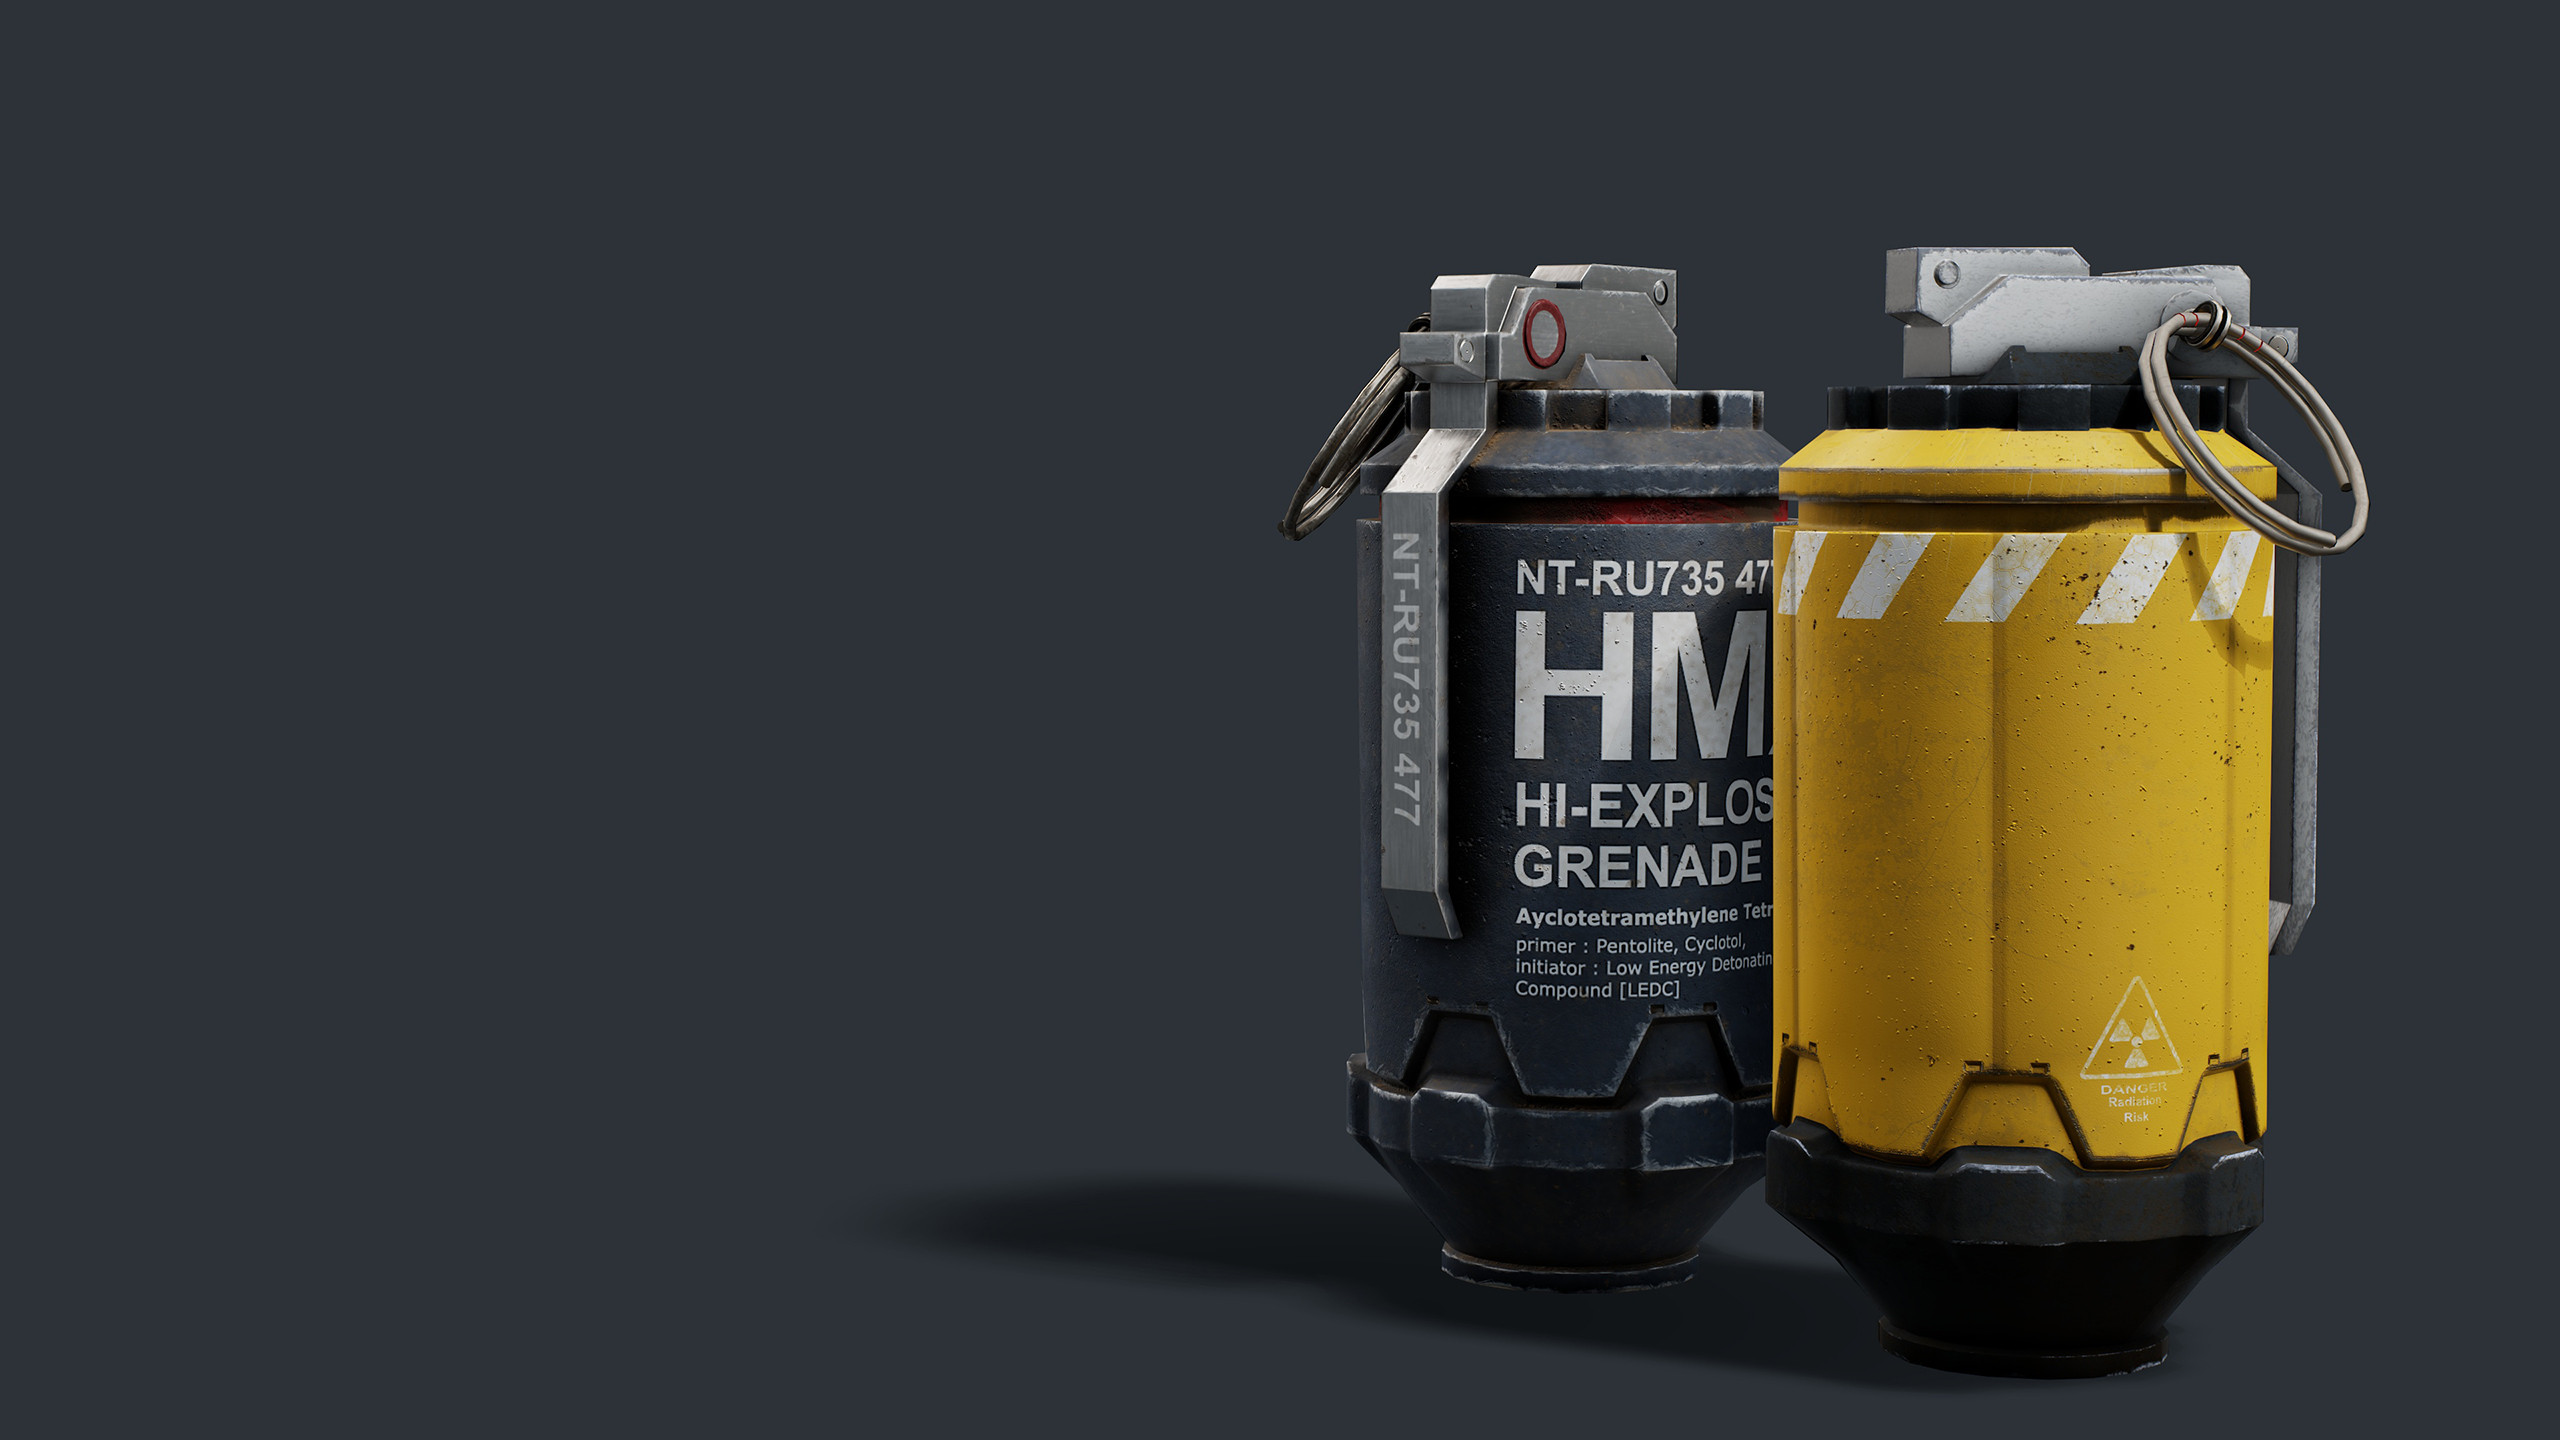 ToolBag 3 renders.  These have 4k textures applied.